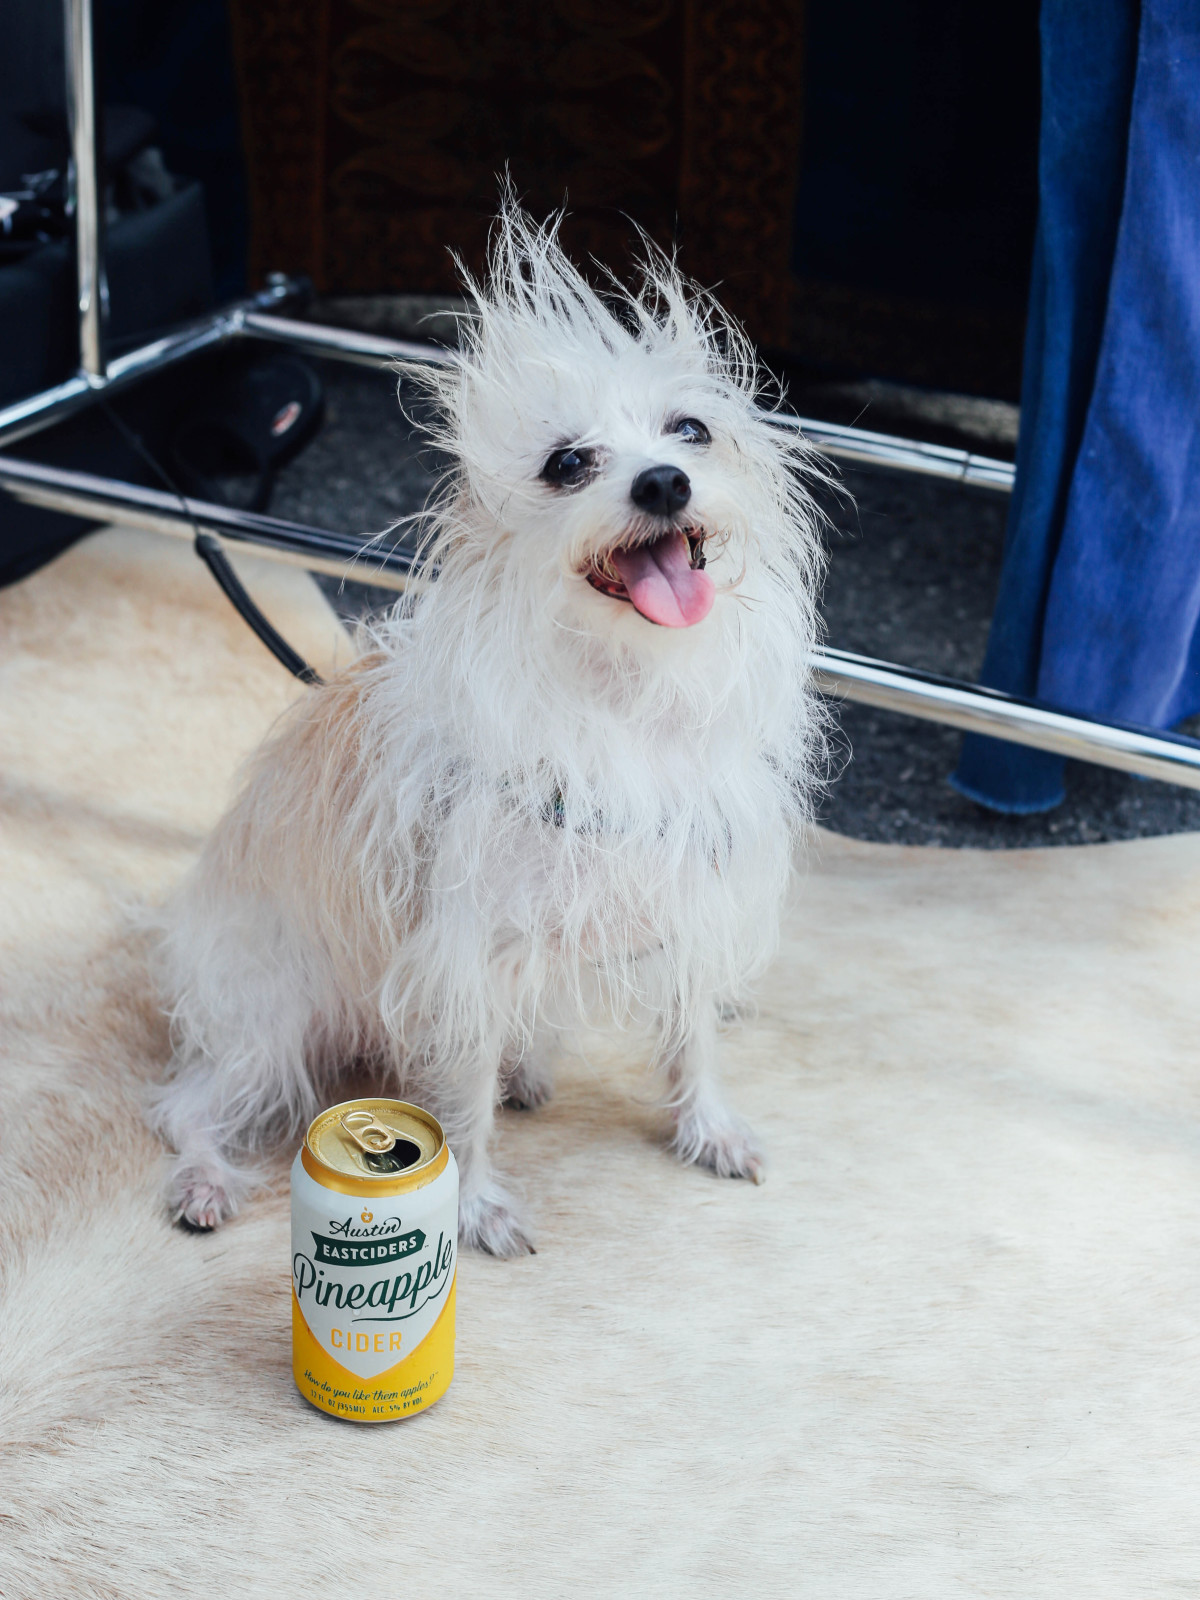 Dog with can of Austin Eastciders